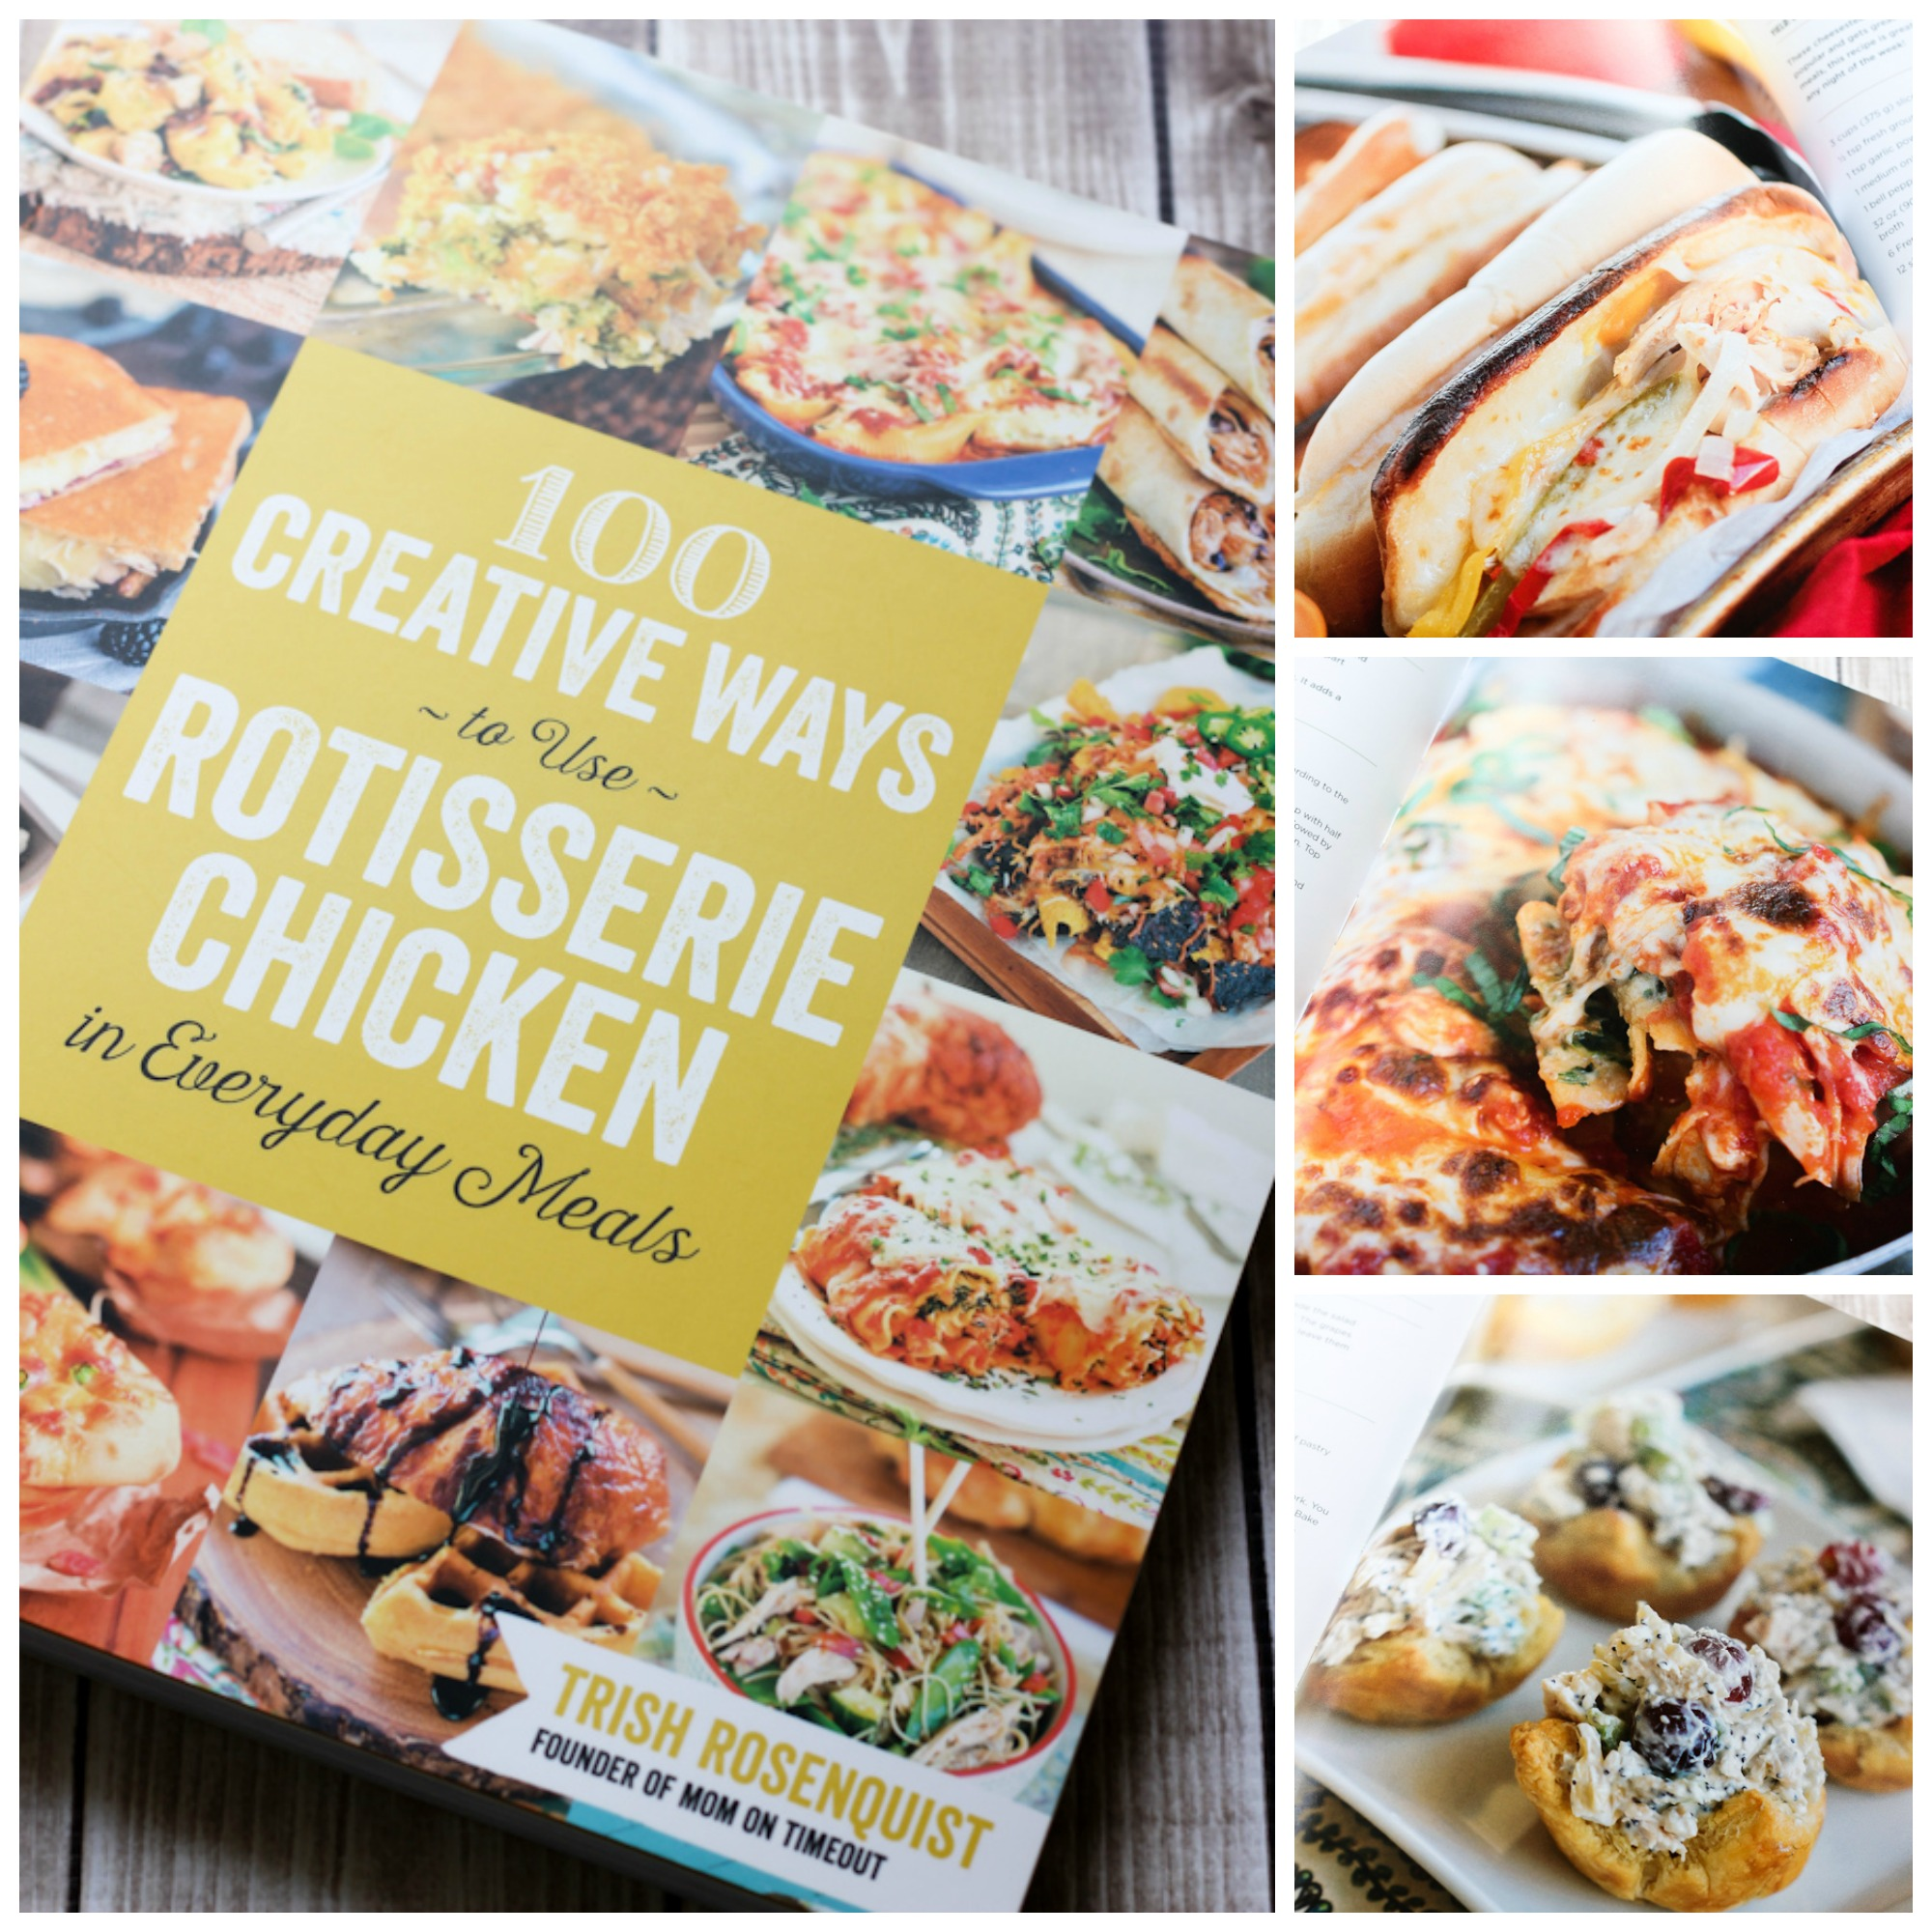 100 Creative Ways to Use Rotisserie Chicken